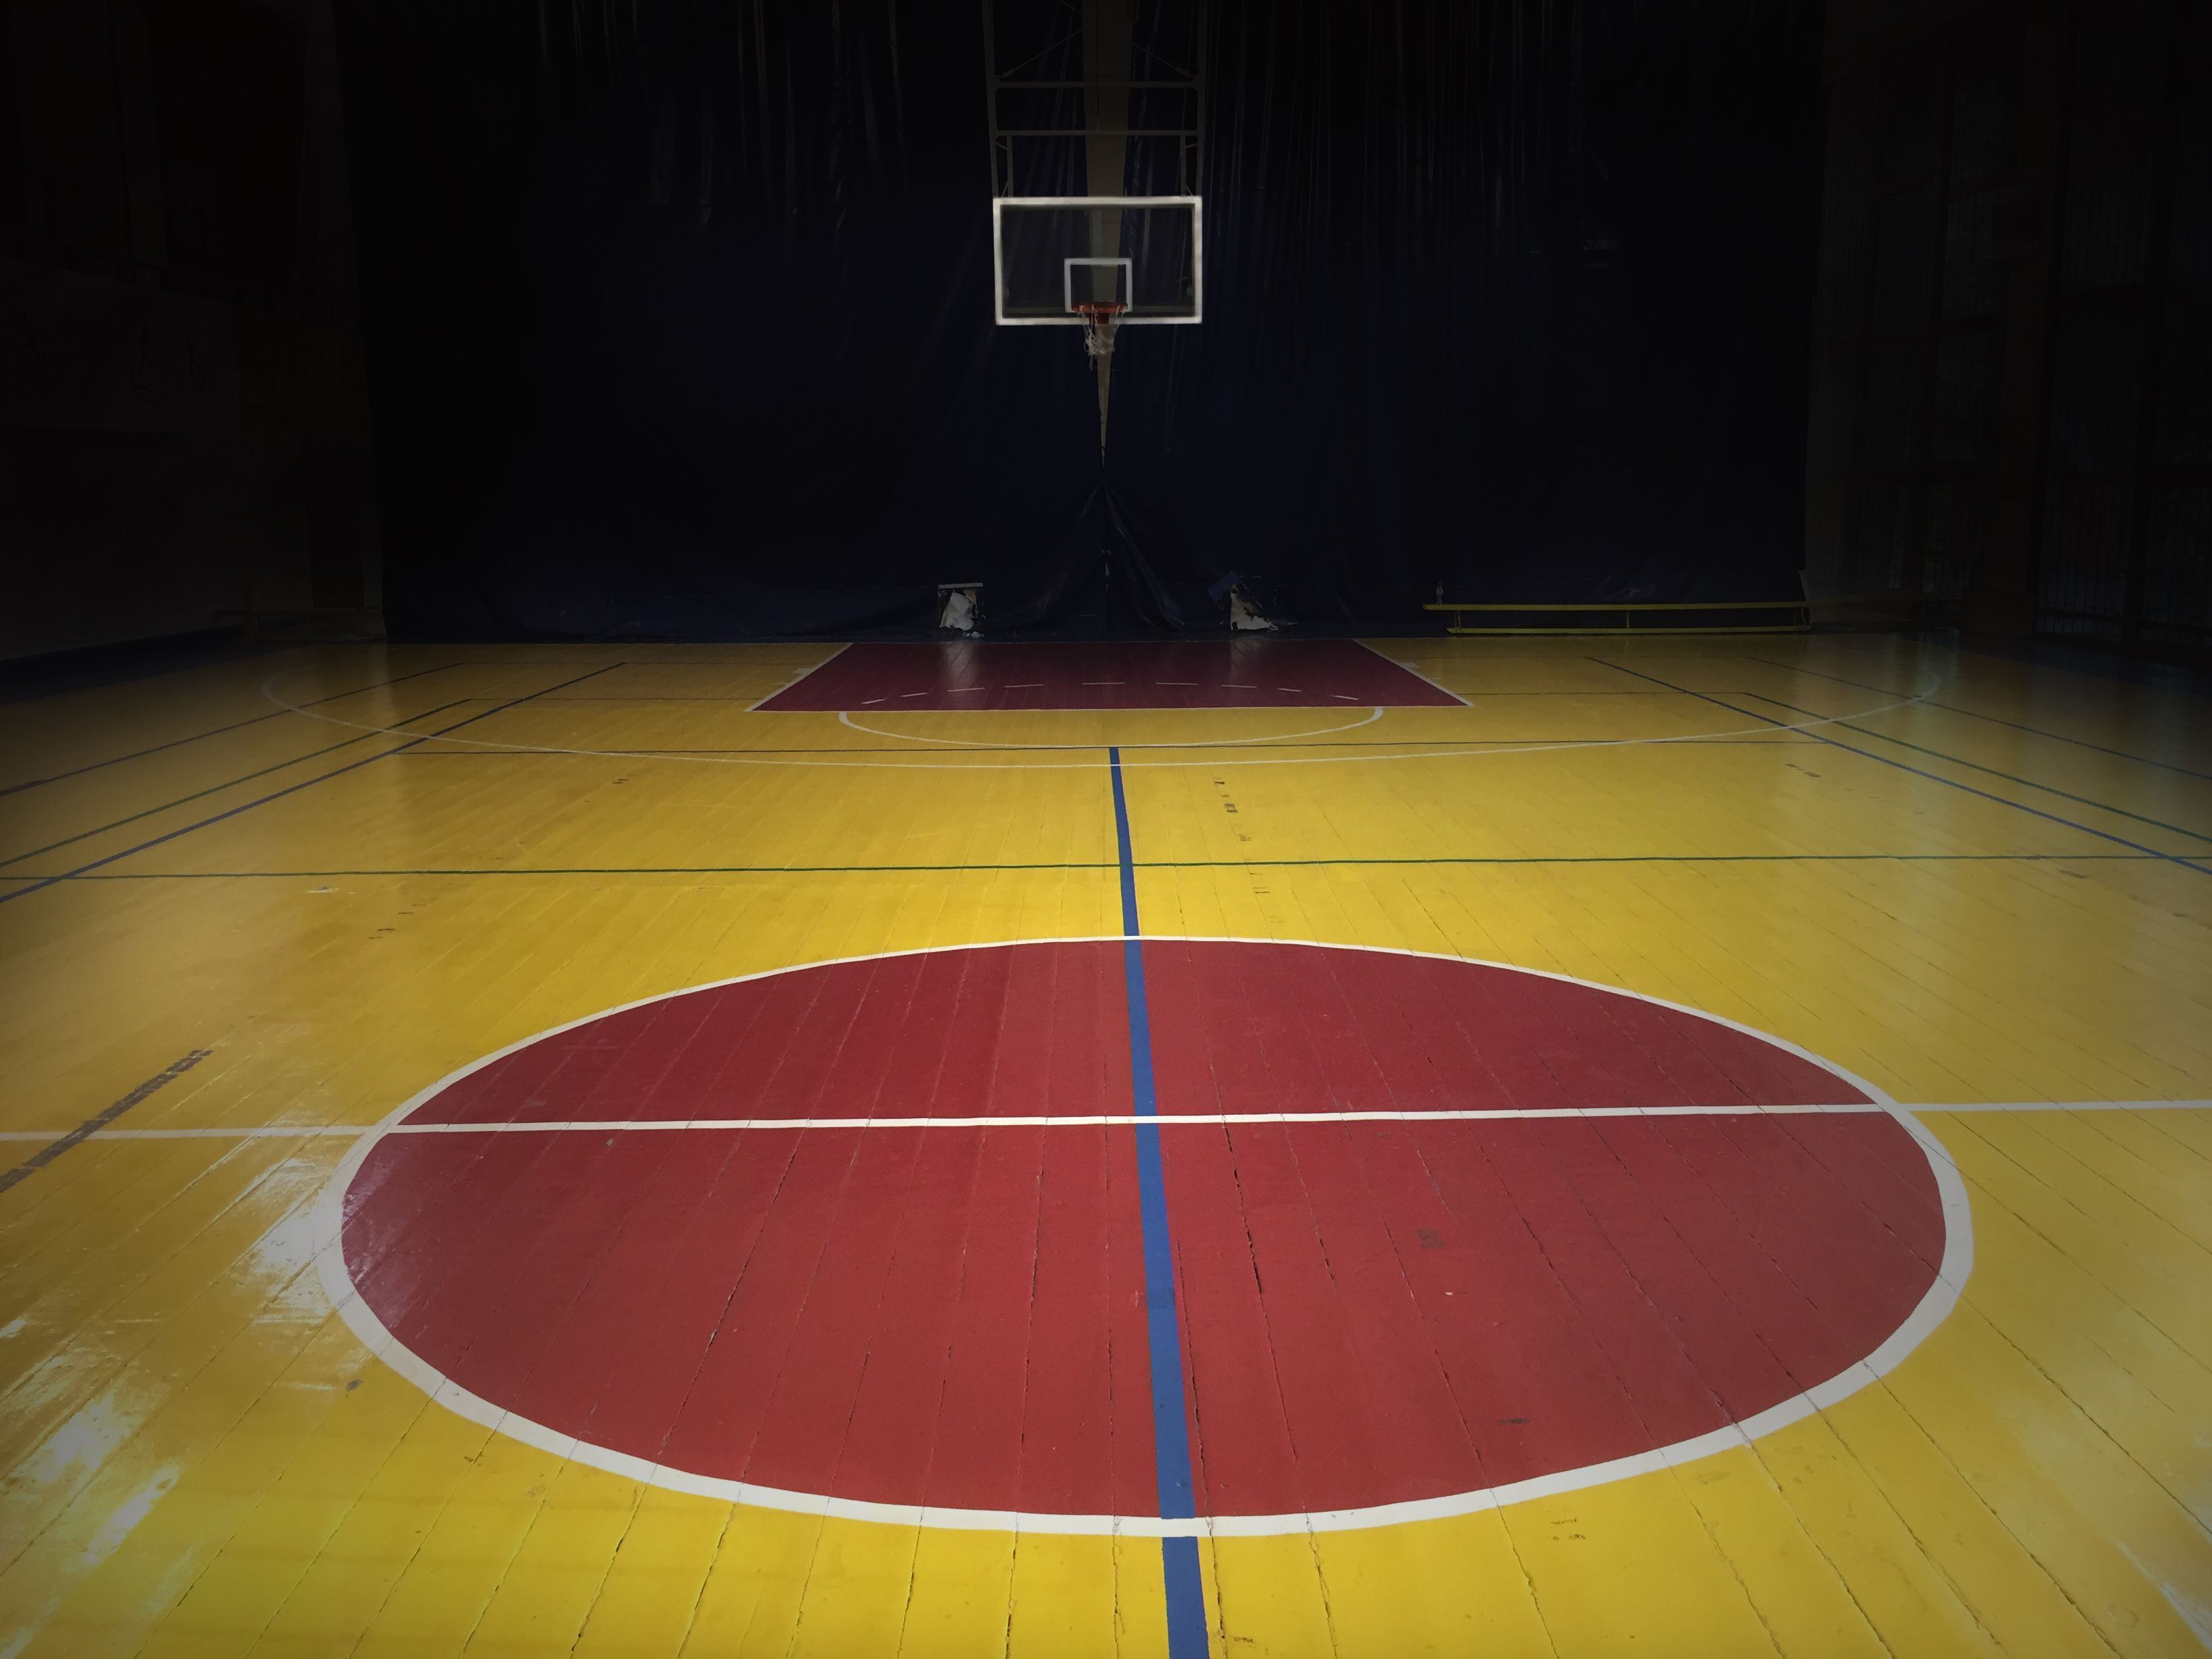 basketball-court-852678264-5be780a446e0fb0026ebd1e3 Home Furniture For Small Spaces on reclining sofas for small spaces, living room sofa for small spaces, sofa beds for small spaces, contemporary sofas for small spaces, bathroom vanity for small spaces, bathroom designs for small spaces,